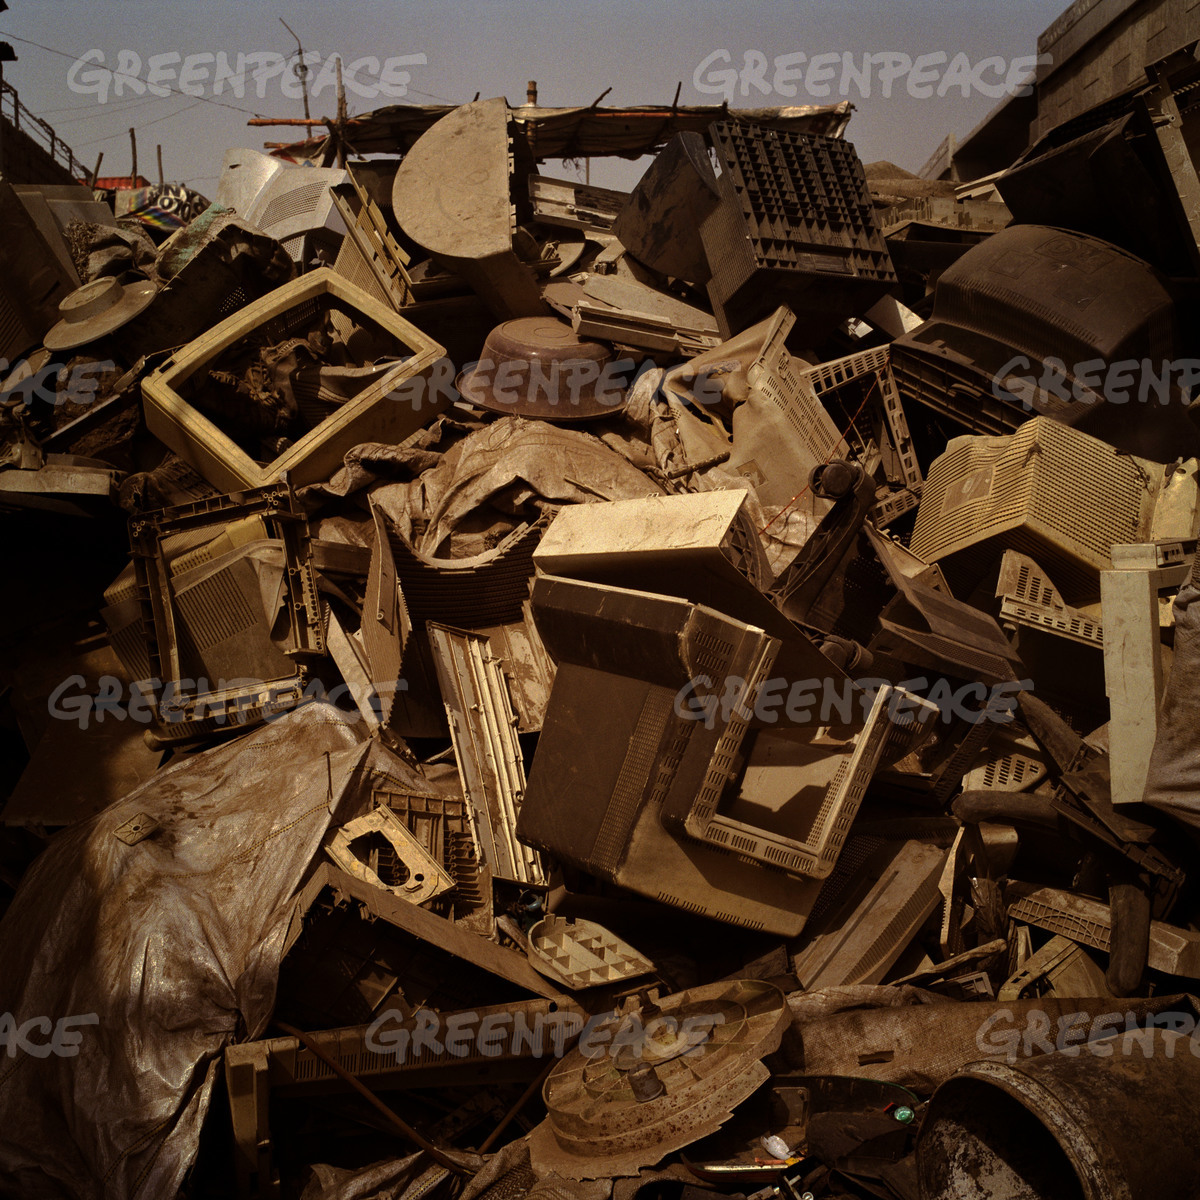 Piles of Plastic, Monitors and Other Electronic Waste